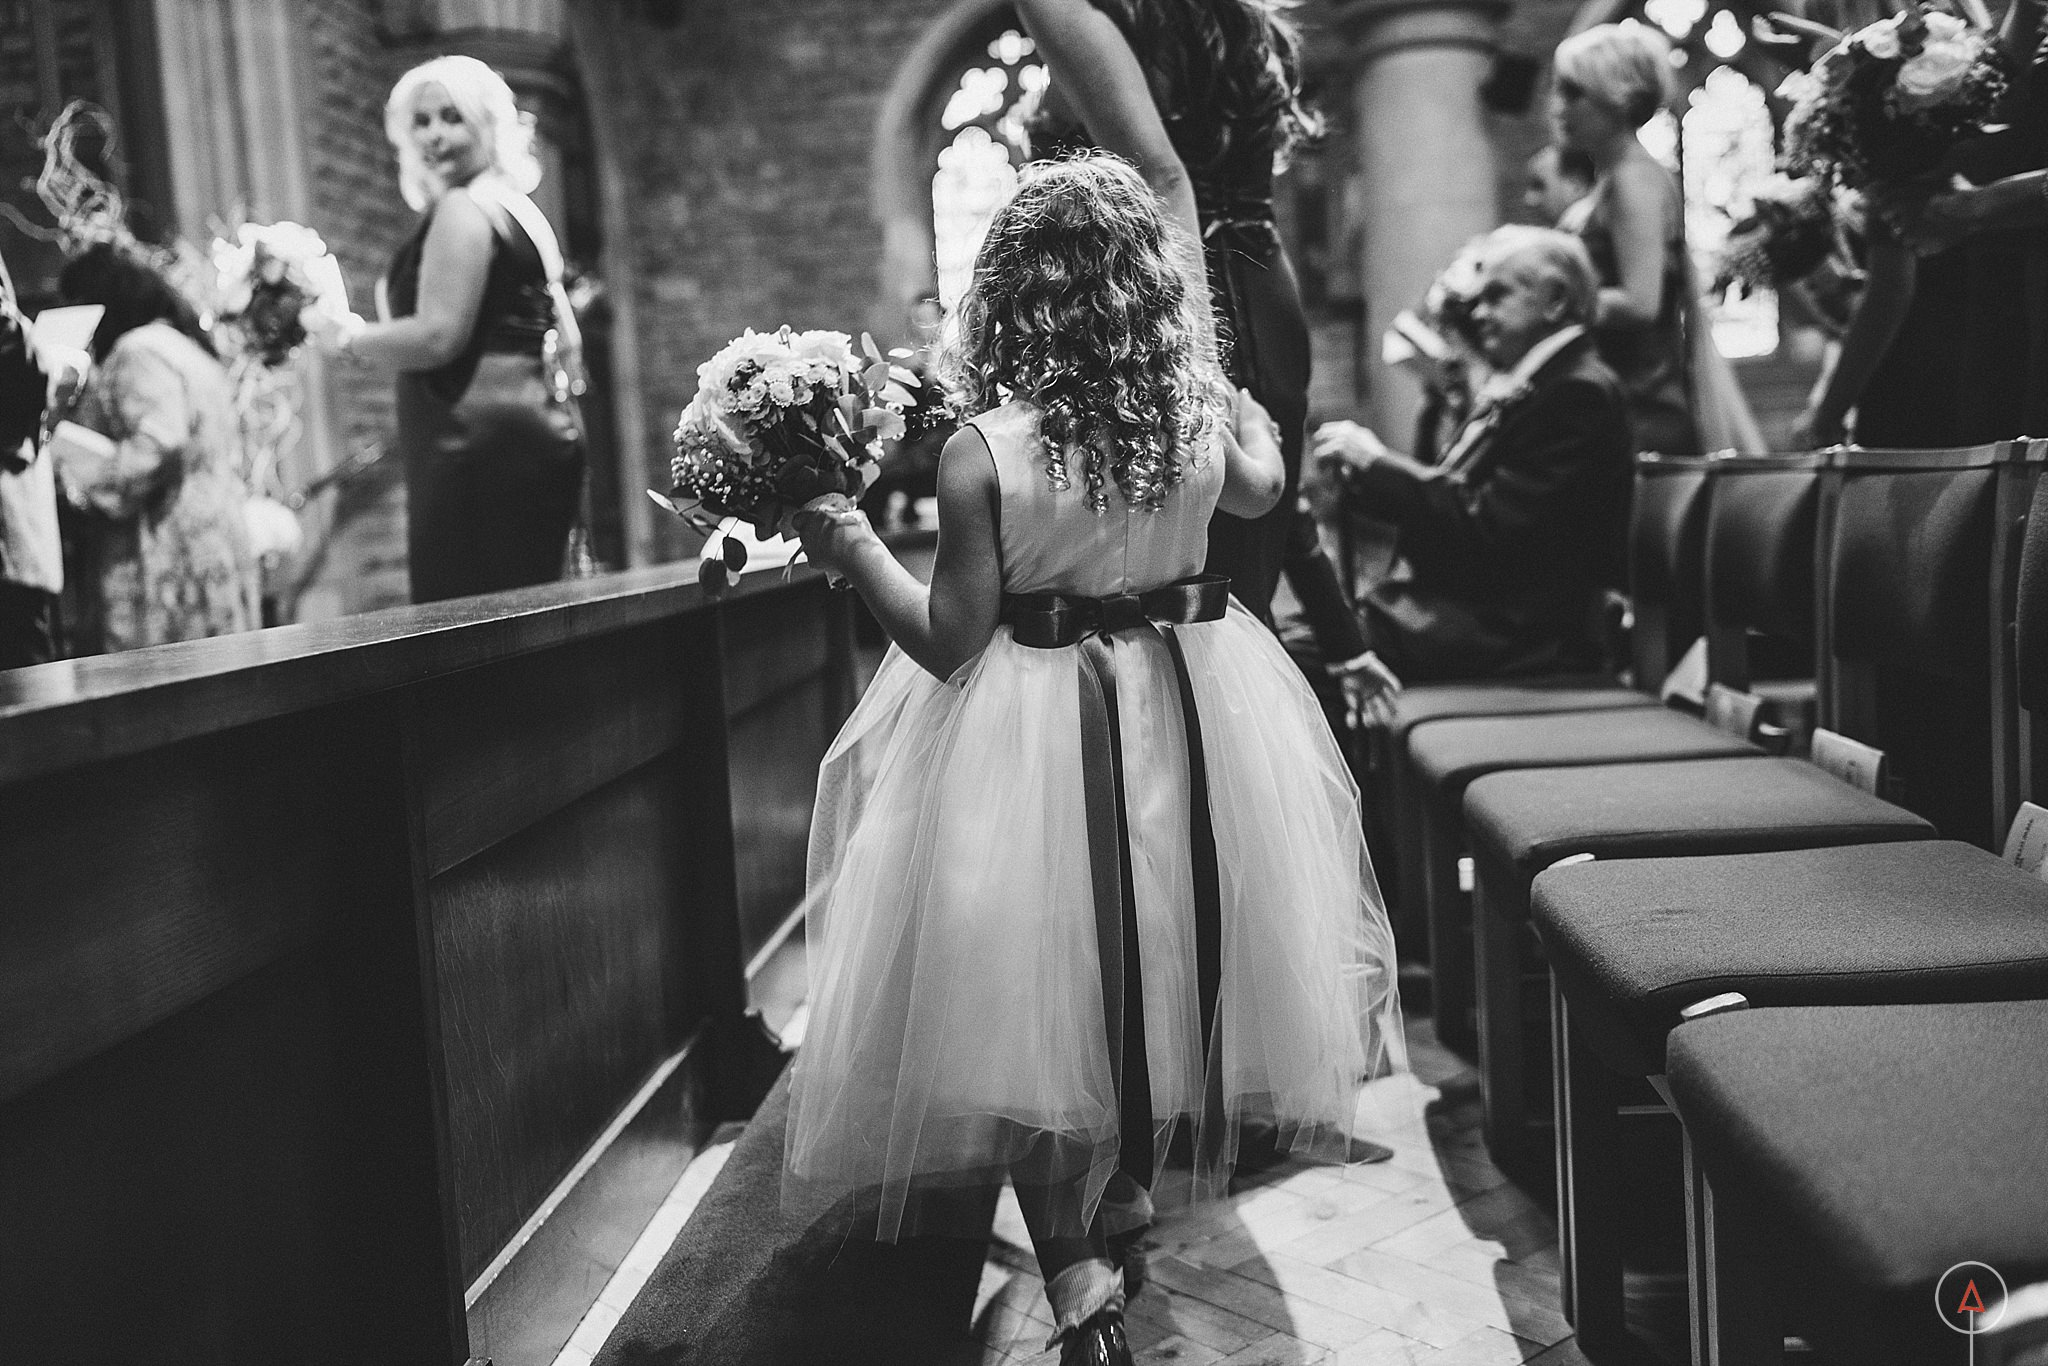 cardiff-wedding-photographer-aga-tomaszek_0367